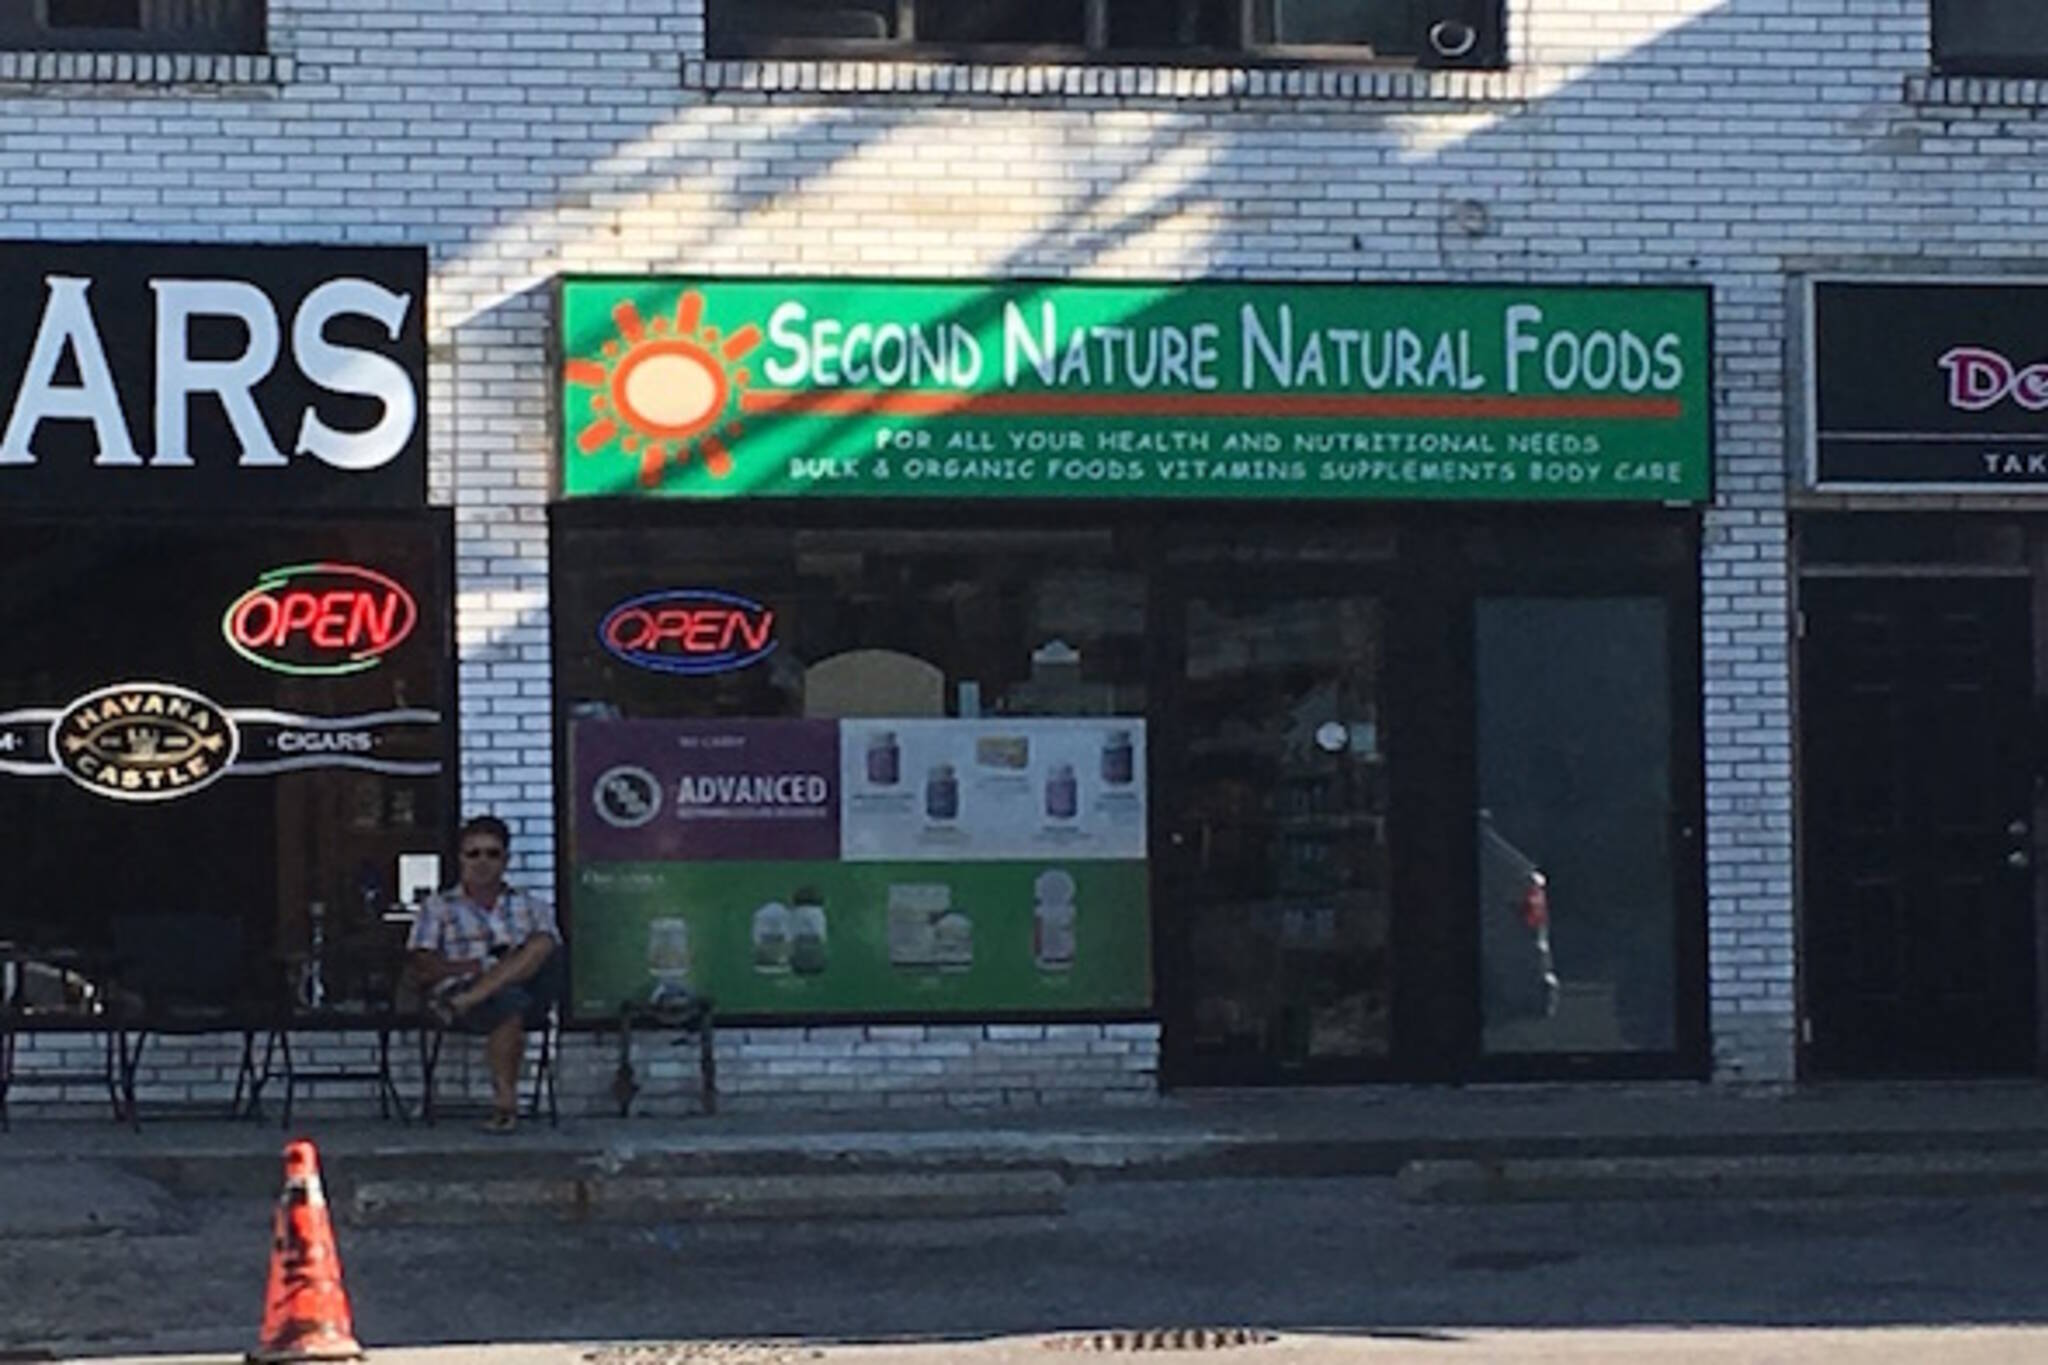 Second Nature Natural Foods Toronto